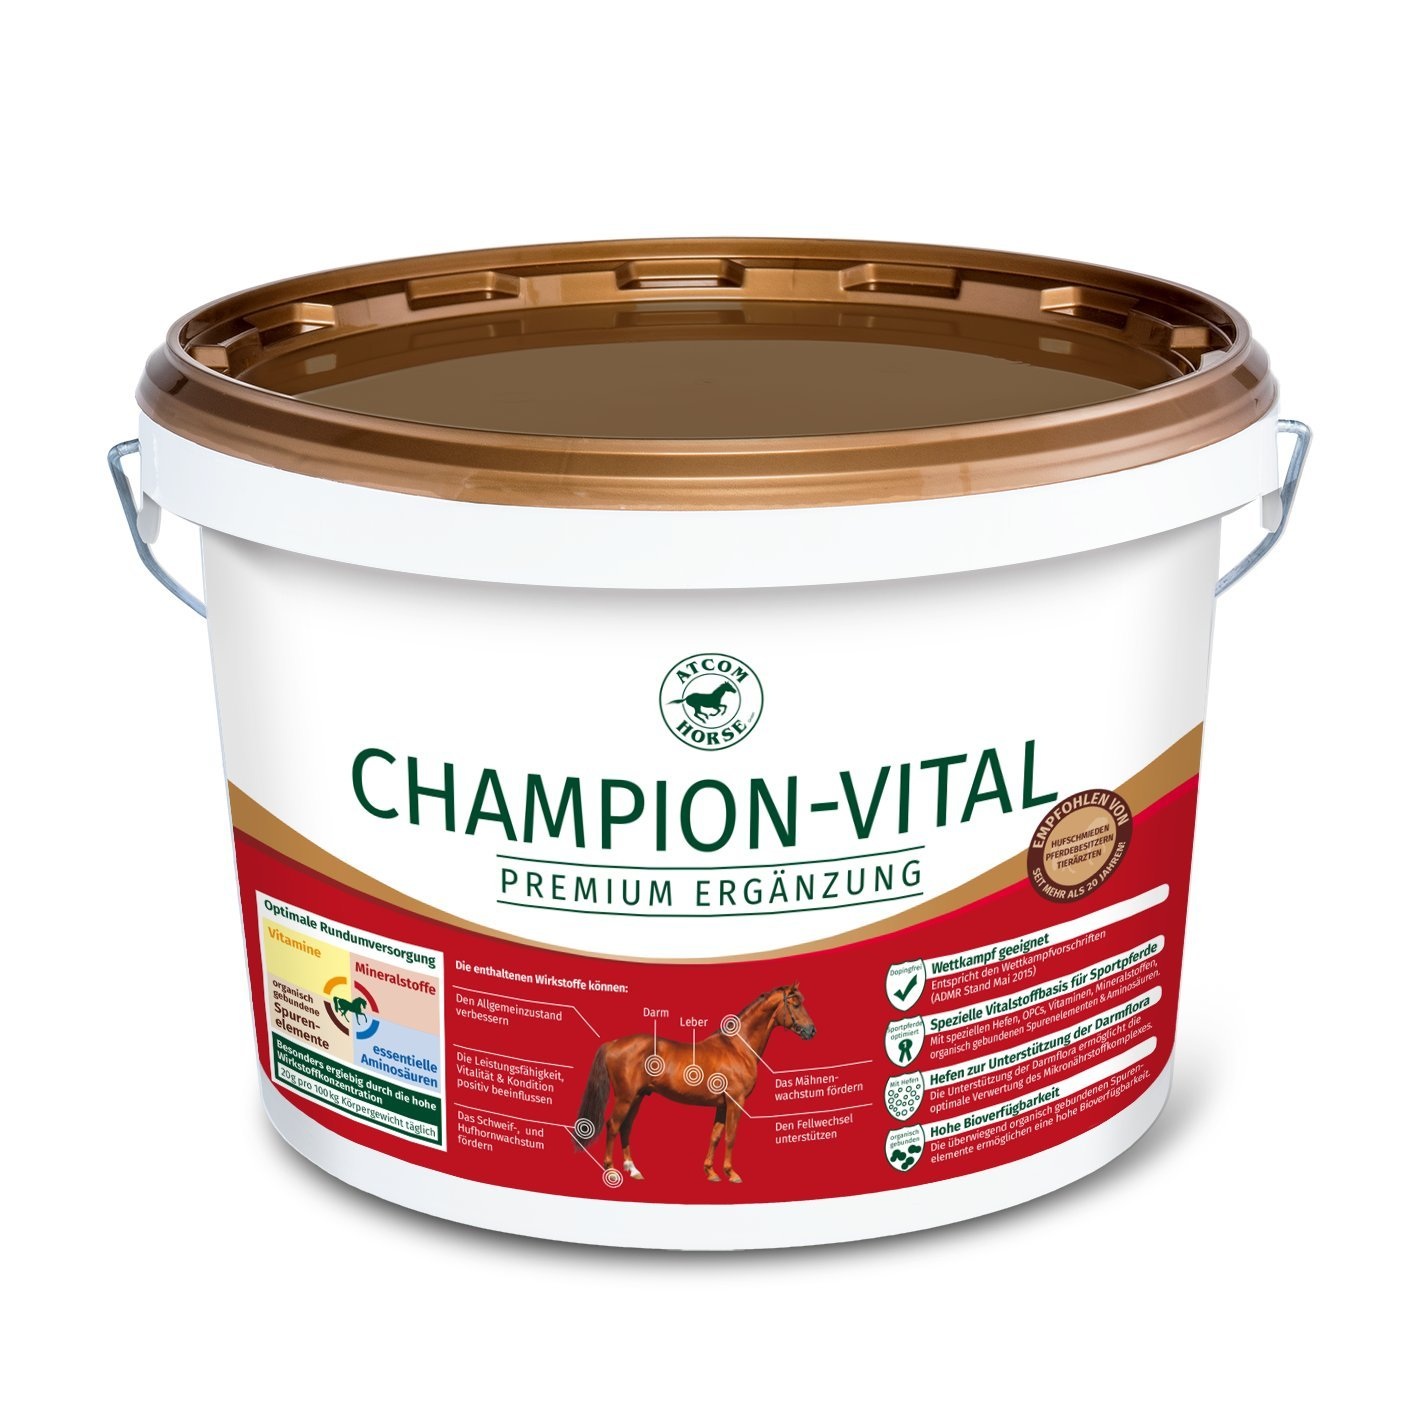 Atcom Champion-Vital Supplementary food for Horses 25 kg